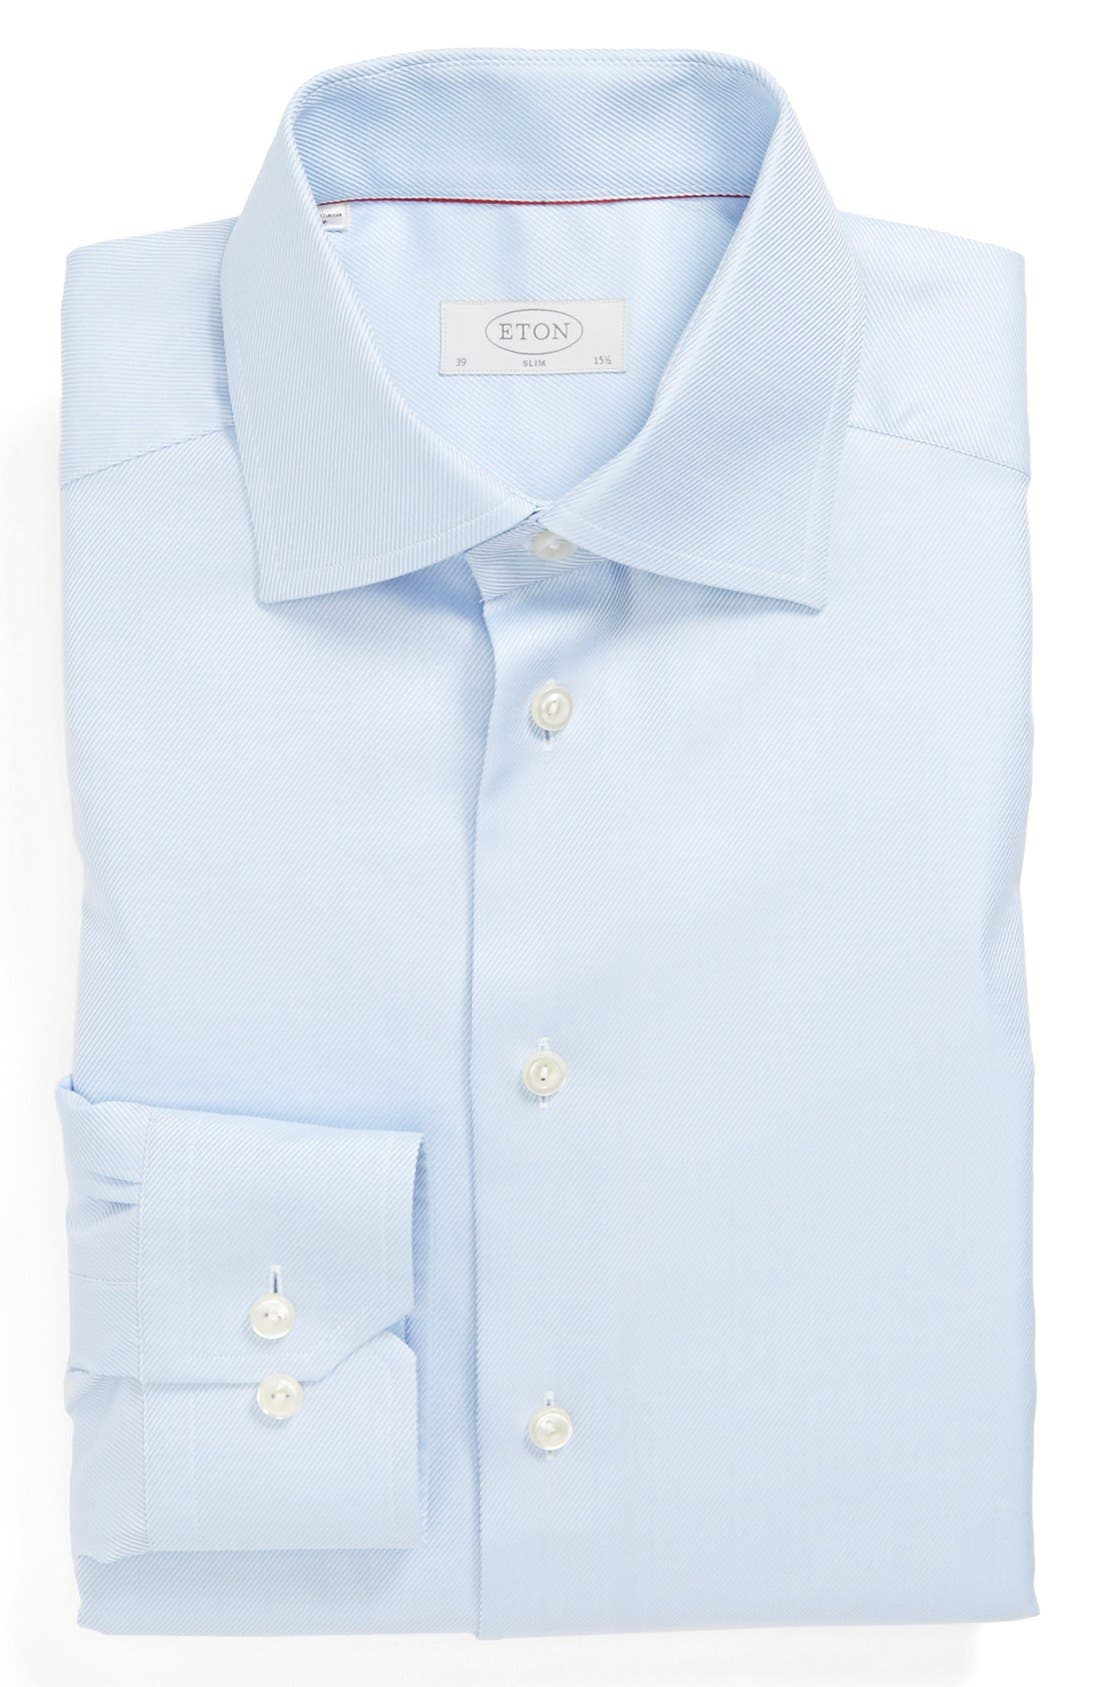 Alternate Image 1 Selected - Eton Slim Fit Non-Iron Dress Shirt